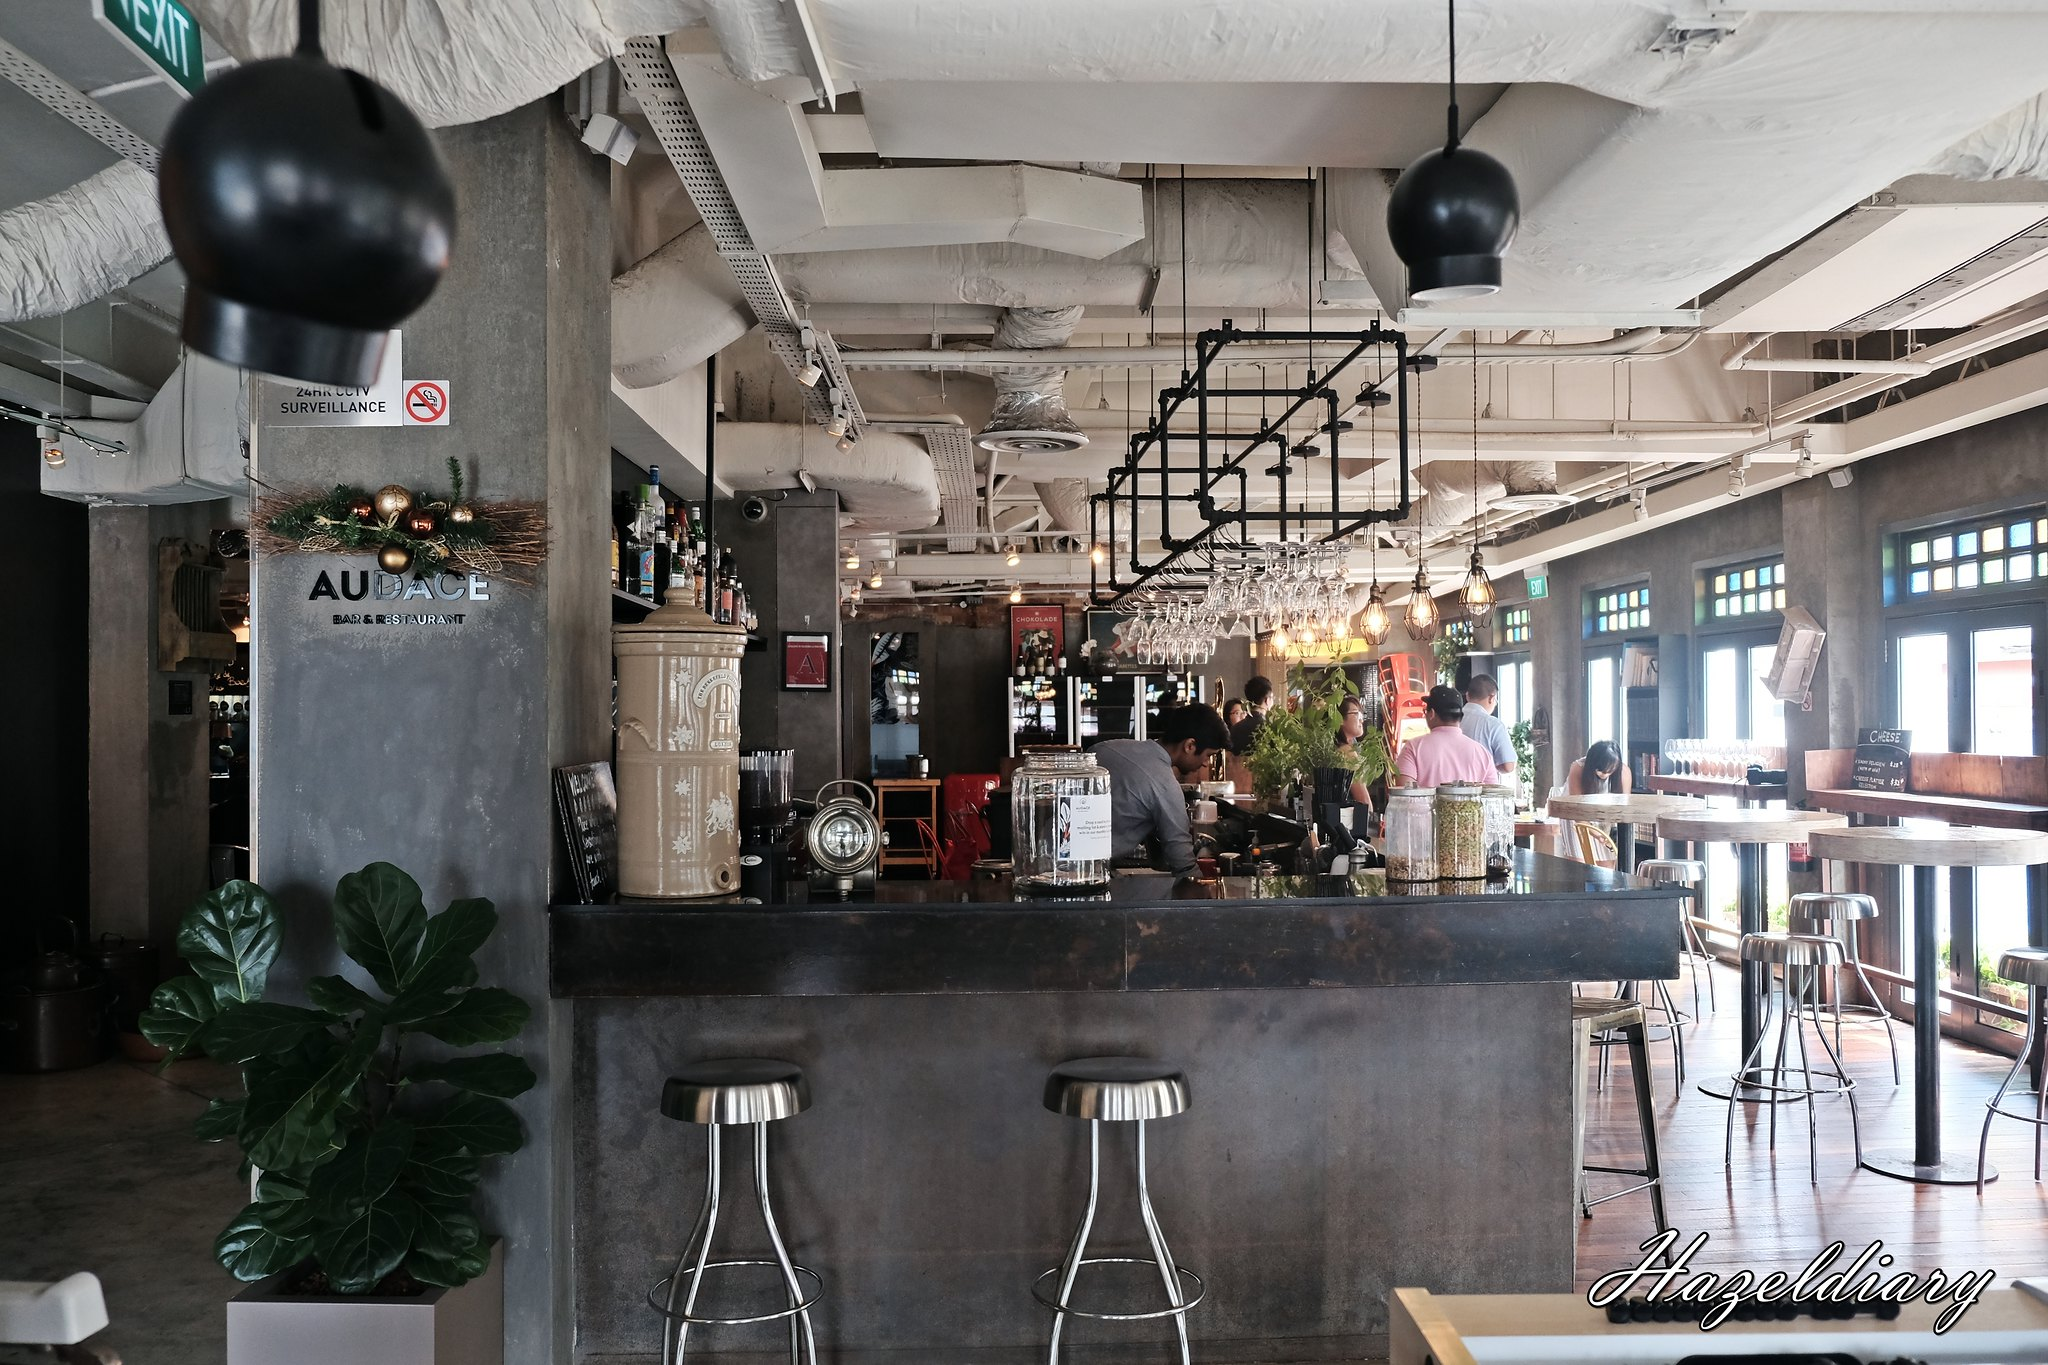 Audace-Restaurant and Bar-Wanderlust hotel Singapore